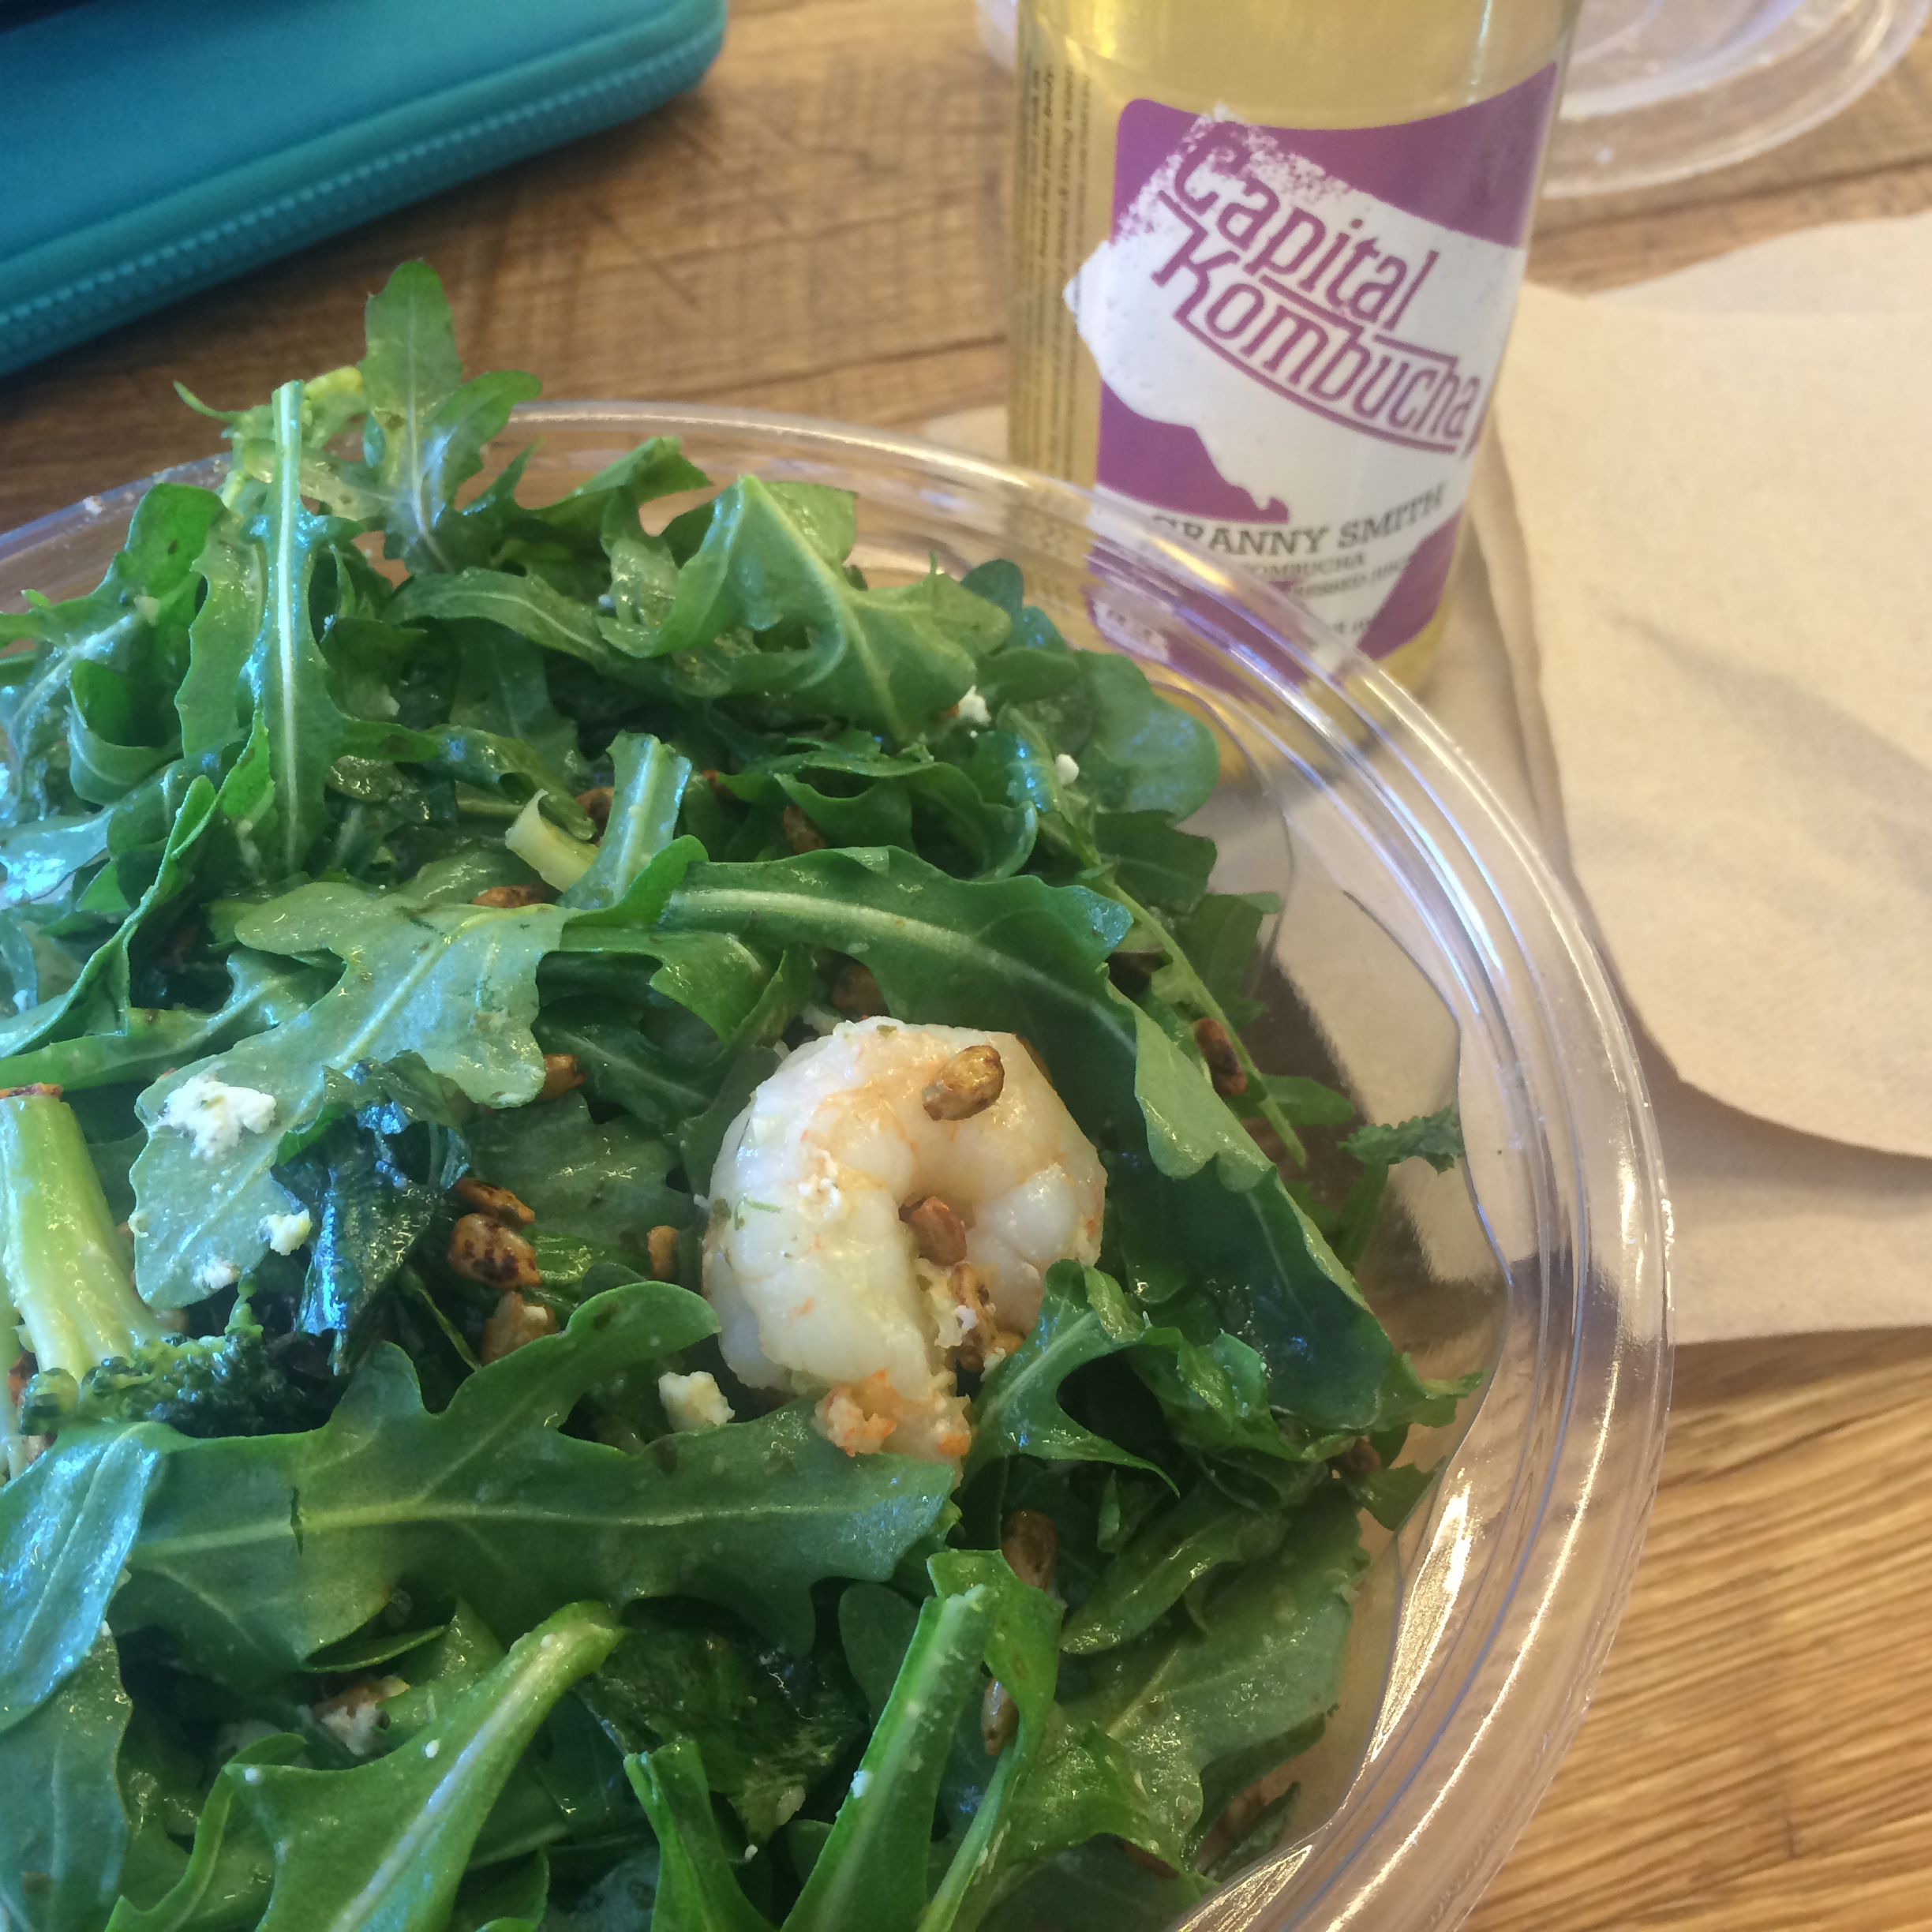 Sweetgreen, the greatest salad shop